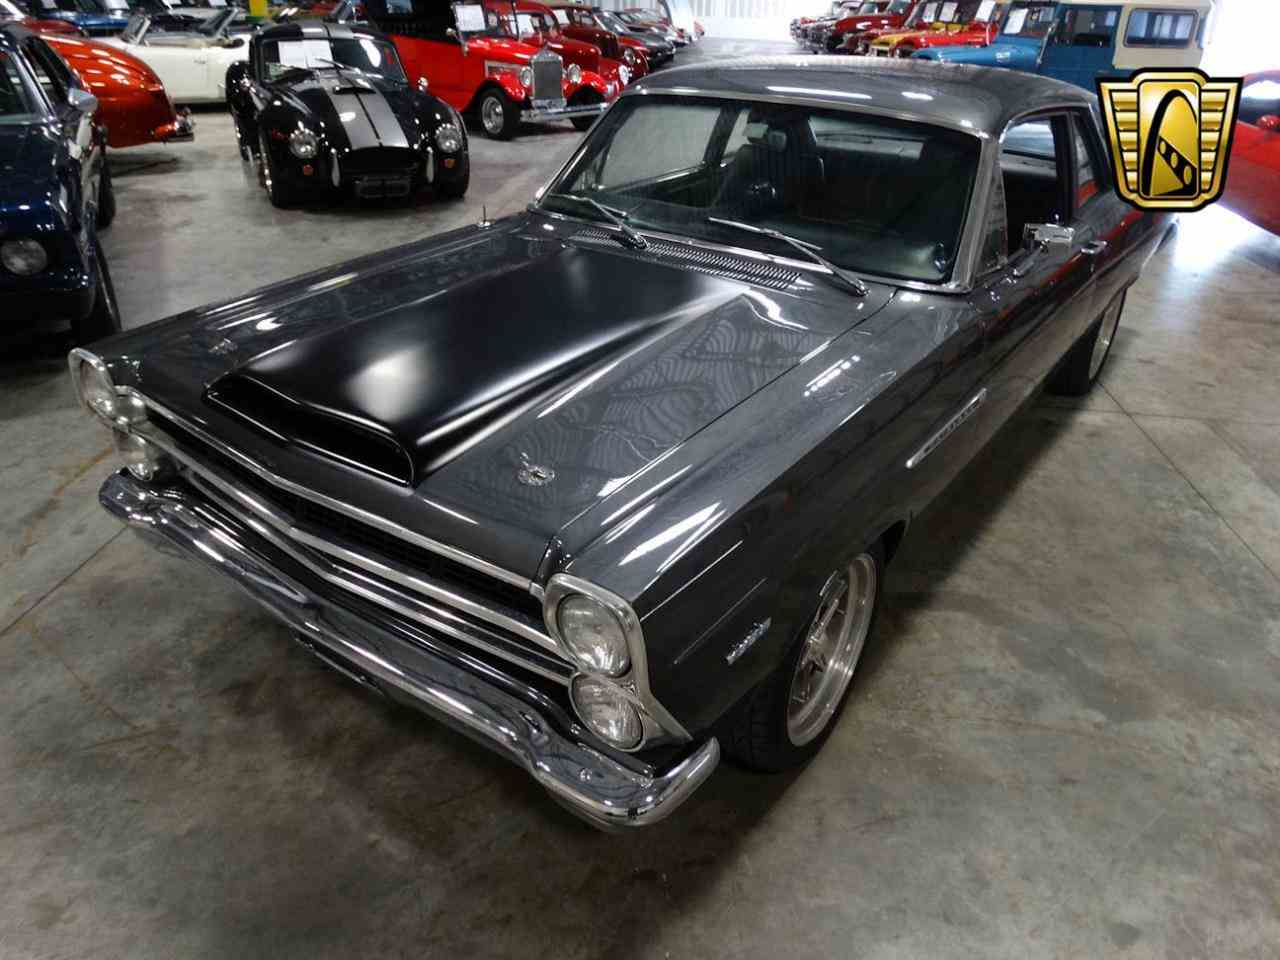 Large Picture of Classic '67 Ford Fairlane - $27,995.00 Offered by Gateway Classic Cars - Fort Lauderdale - L7H3